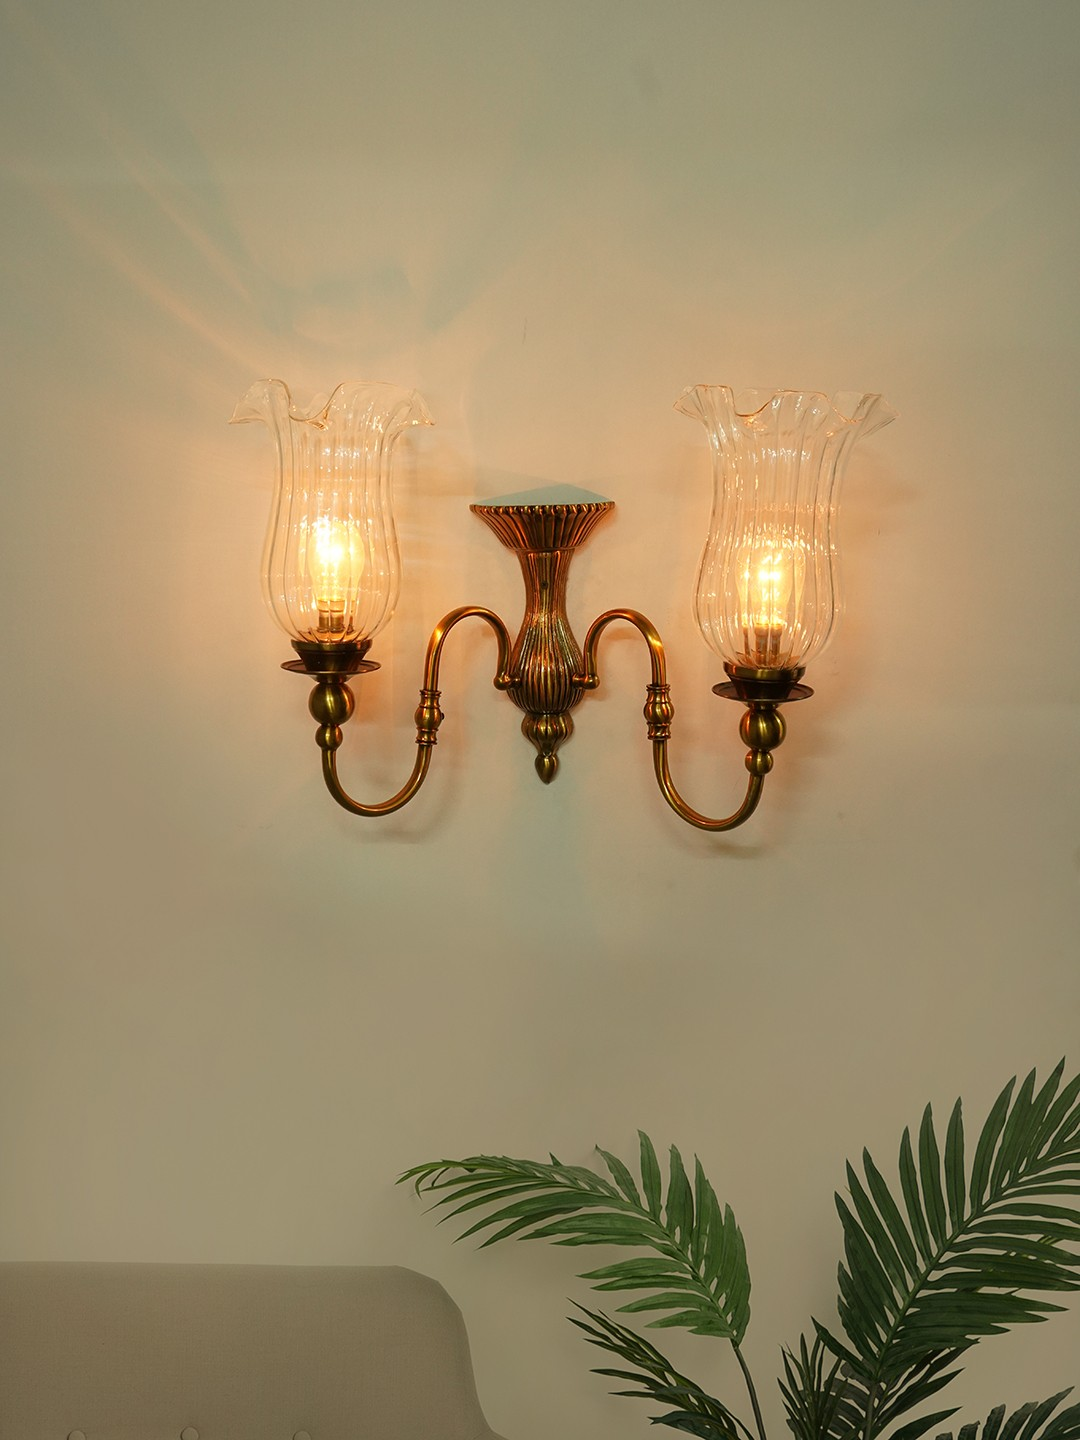 Victoria Cast Brass Antique Bronze Double Wall Sconce with Fluted Hand Blown Glass Shades